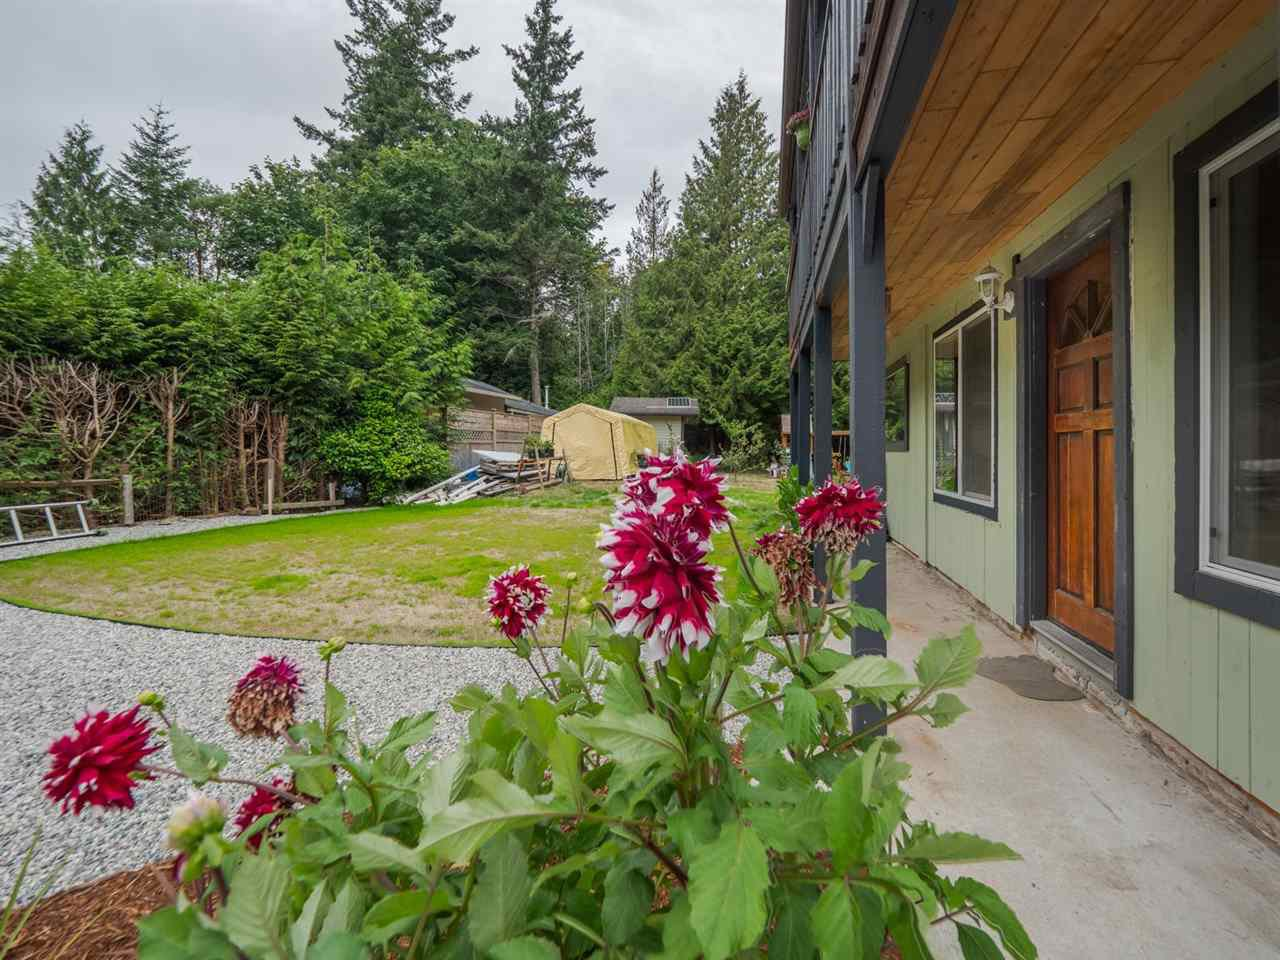 Photo 18: Photos: 1625 BLOWER Road in Sechelt: Sechelt District House for sale (Sunshine Coast)  : MLS®# R2394268